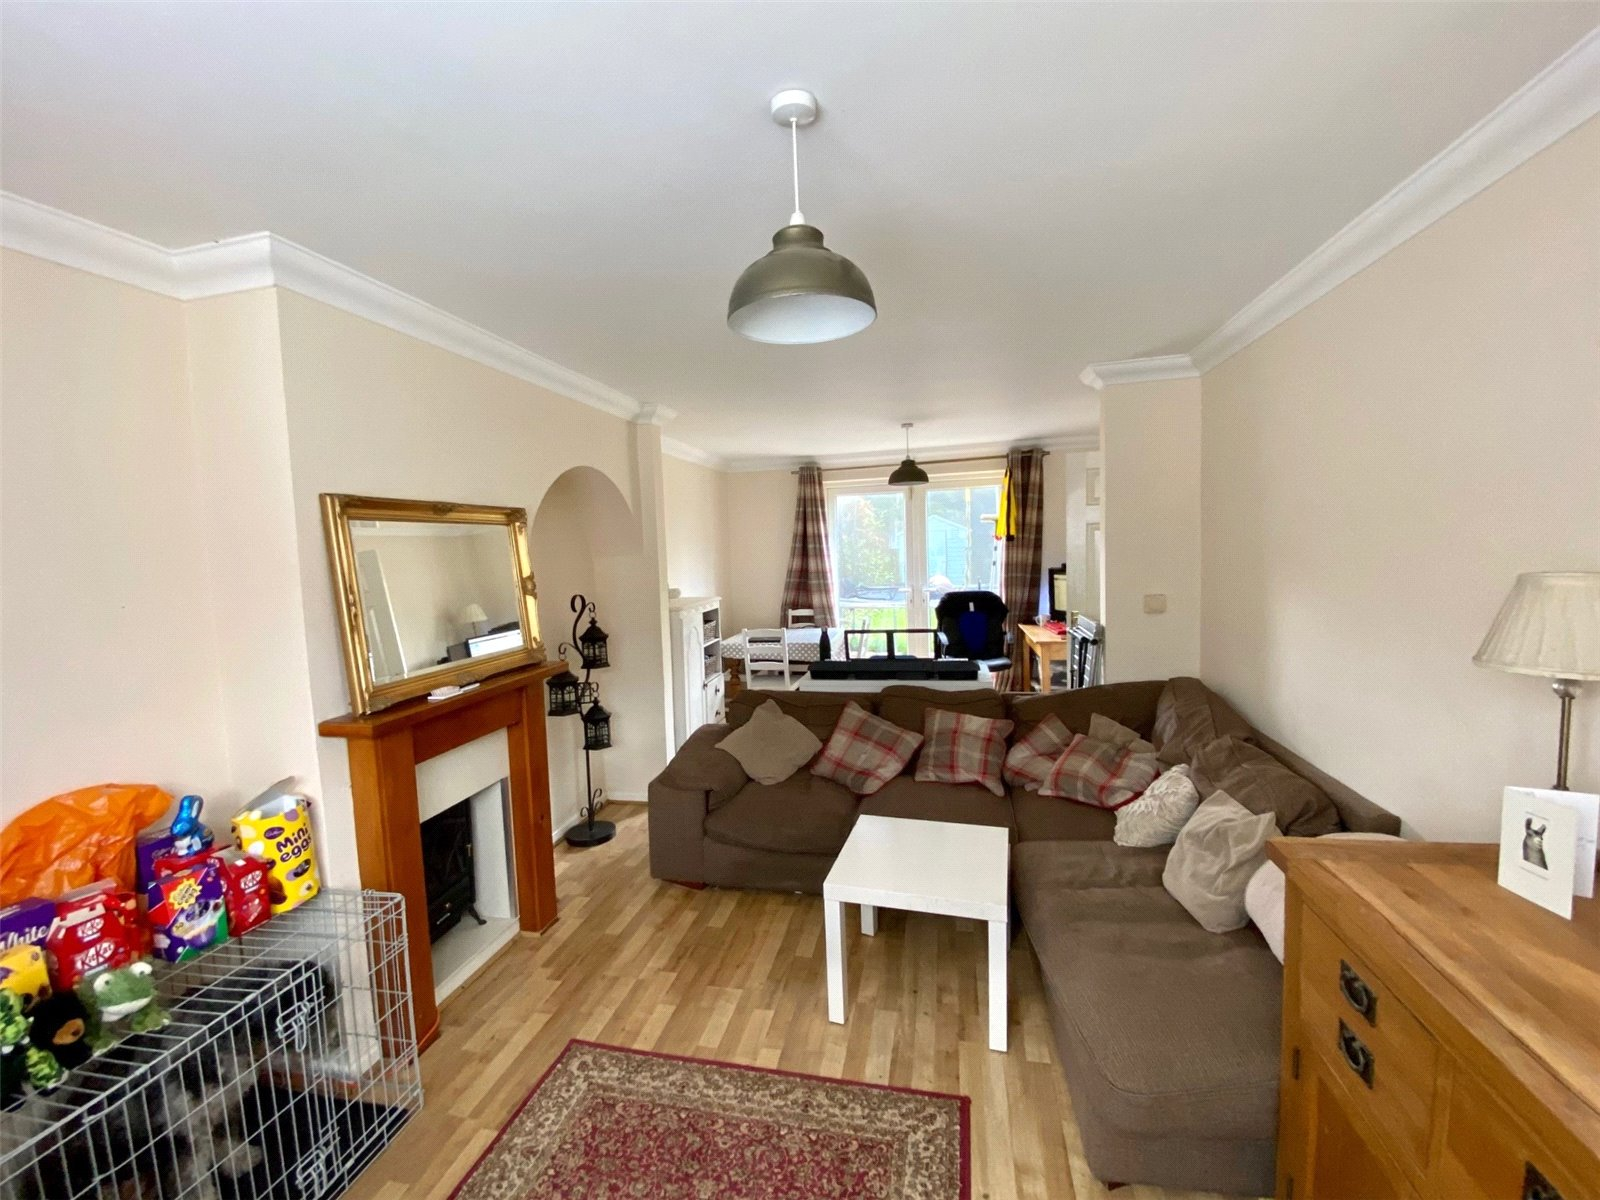 3 bed house to rent in Bricket Wood, AL2 3NB 2